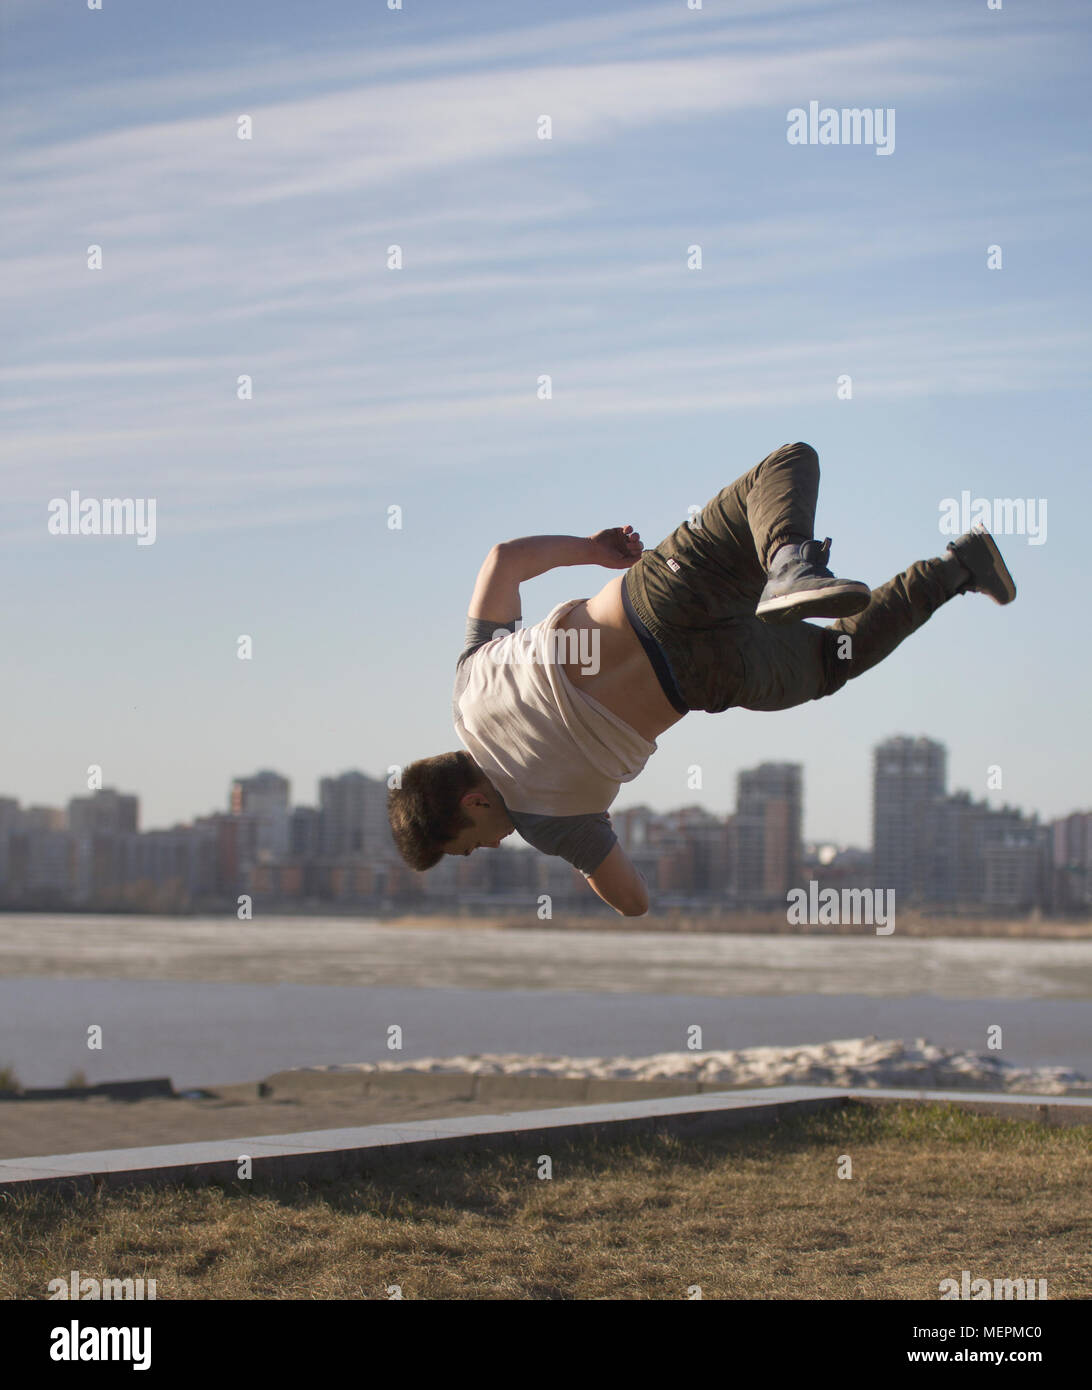 Young man parkour sportsman performs tricks in front of skyline - Stock Image